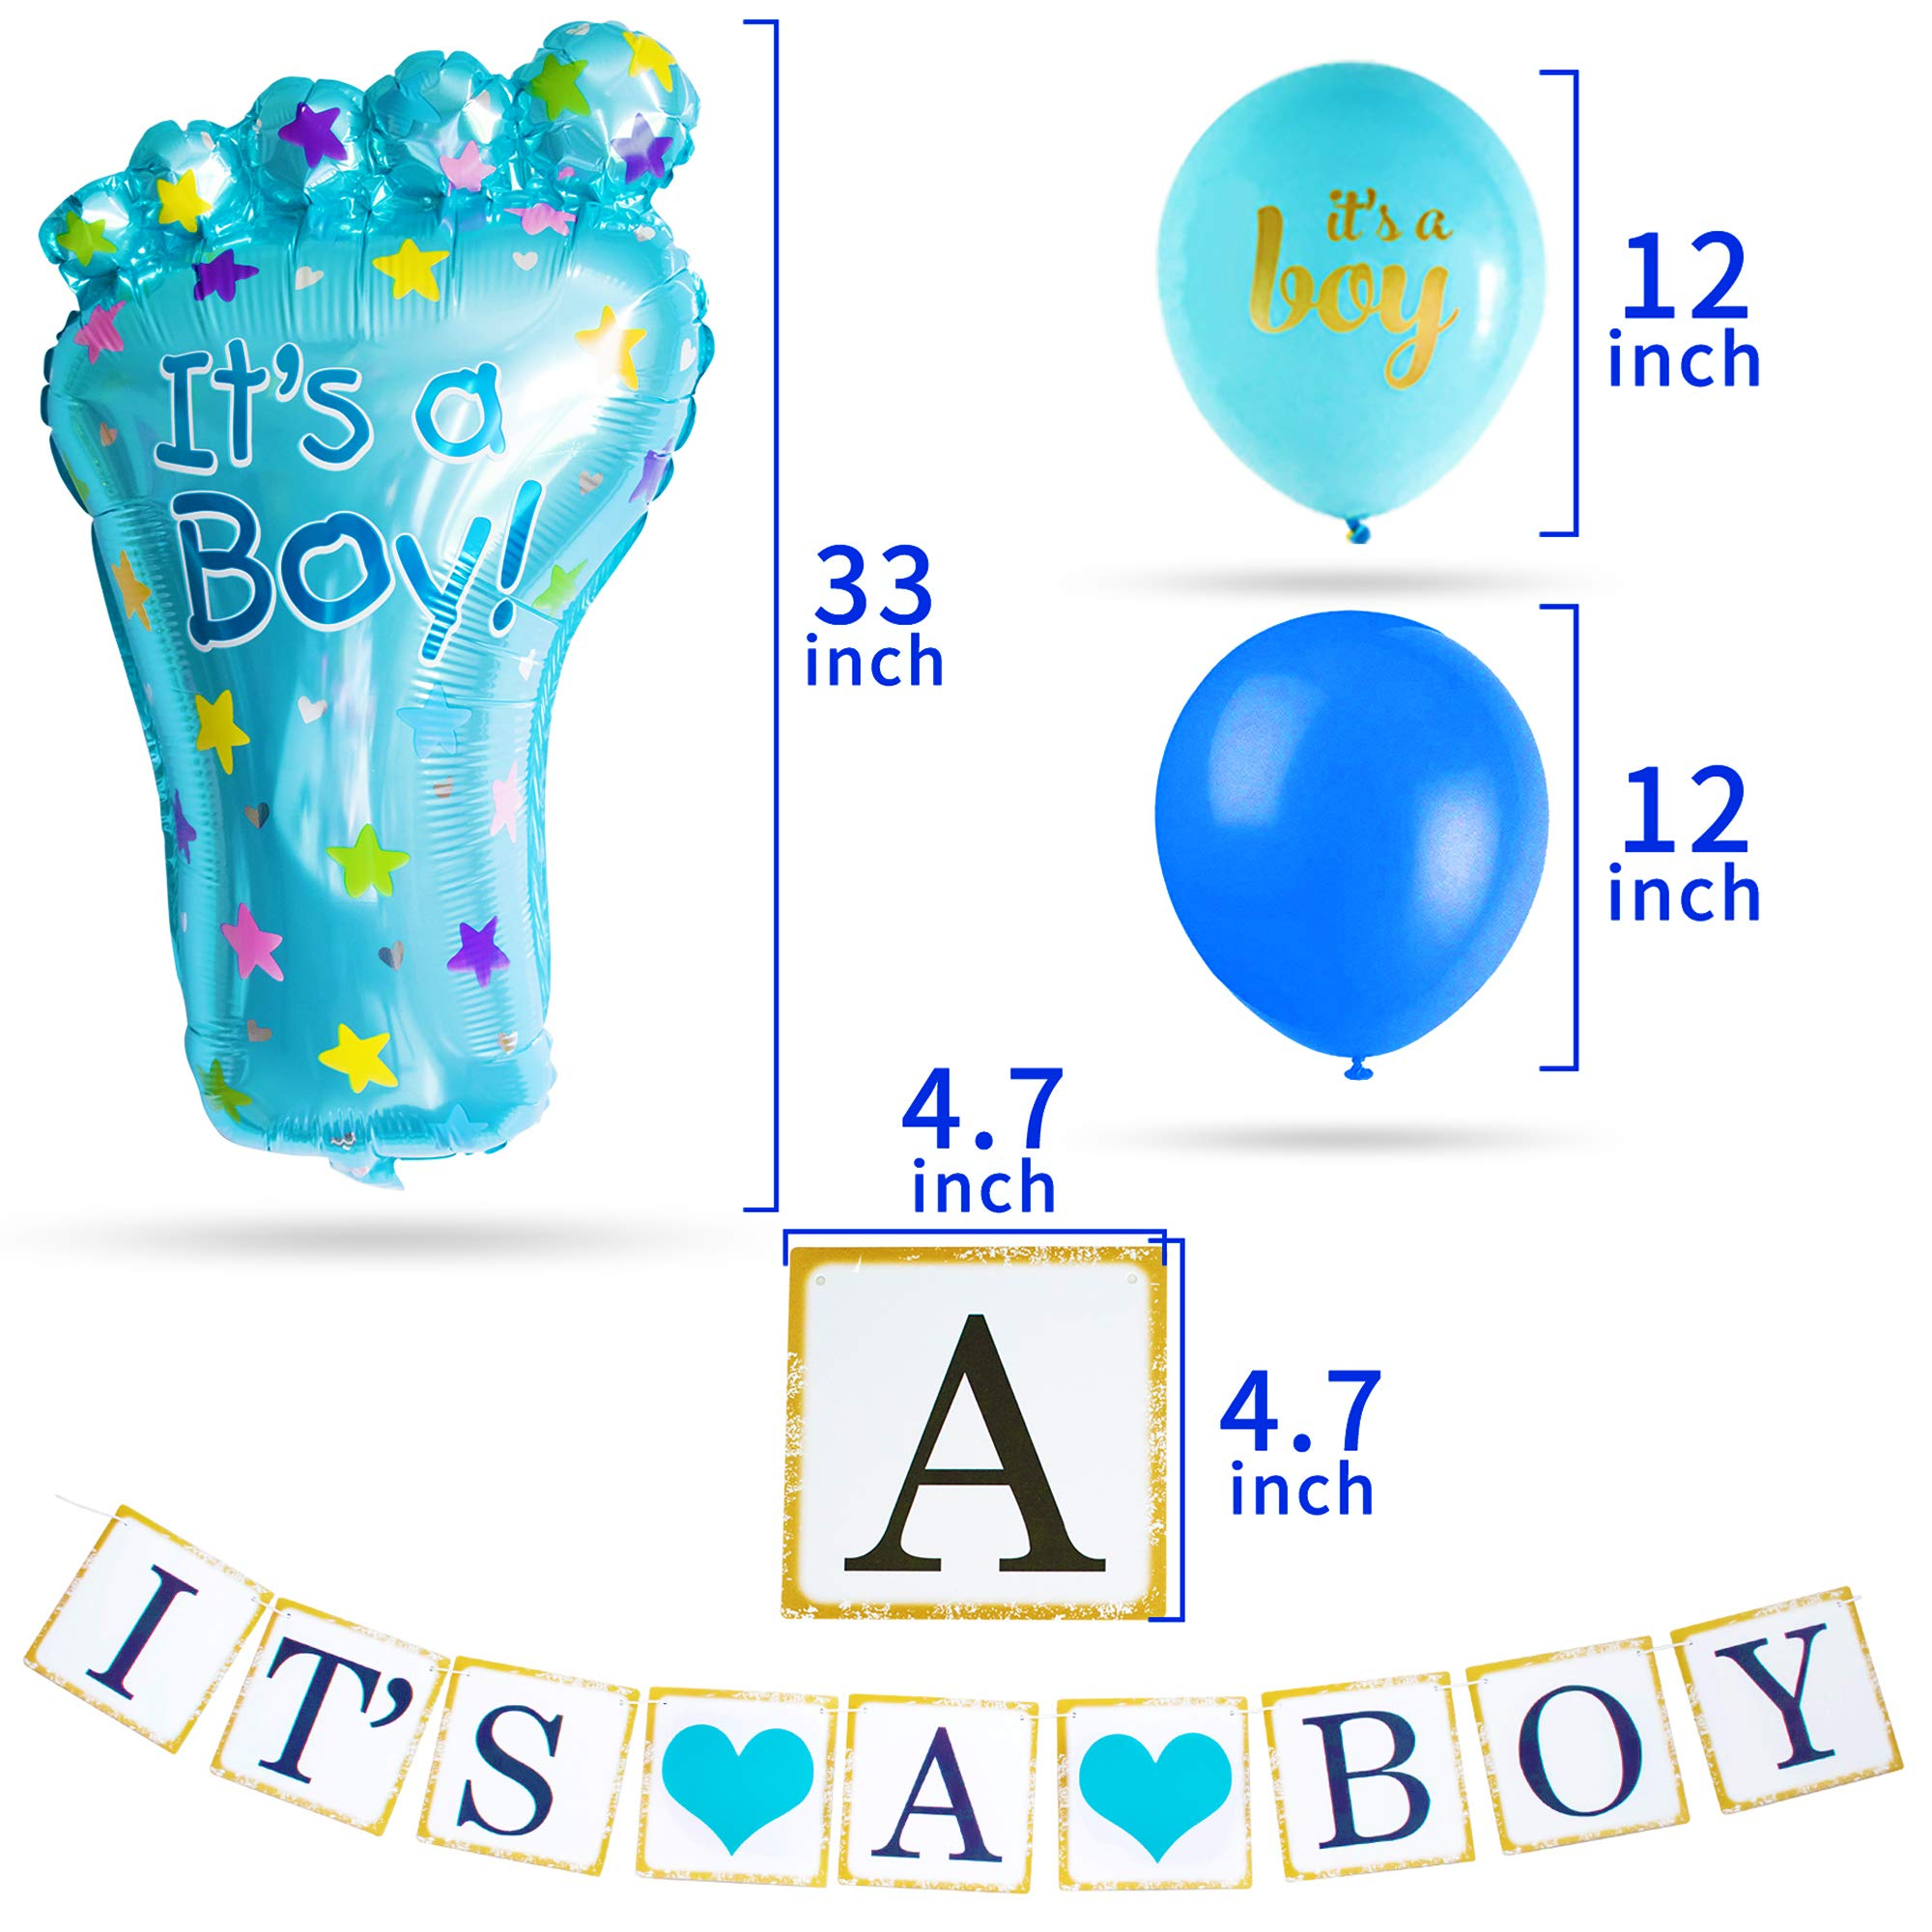 Baby Shower Decorations for Boy I BabyShower Backdrop Decor I Boy Baby Shower Decorations I Premium Party Decoration Items I Its a Boy Banner Star Swirls Foot-shaped Foil Balloon Lanterns, Cake Topper by Moment-O-Mania (Image #6)